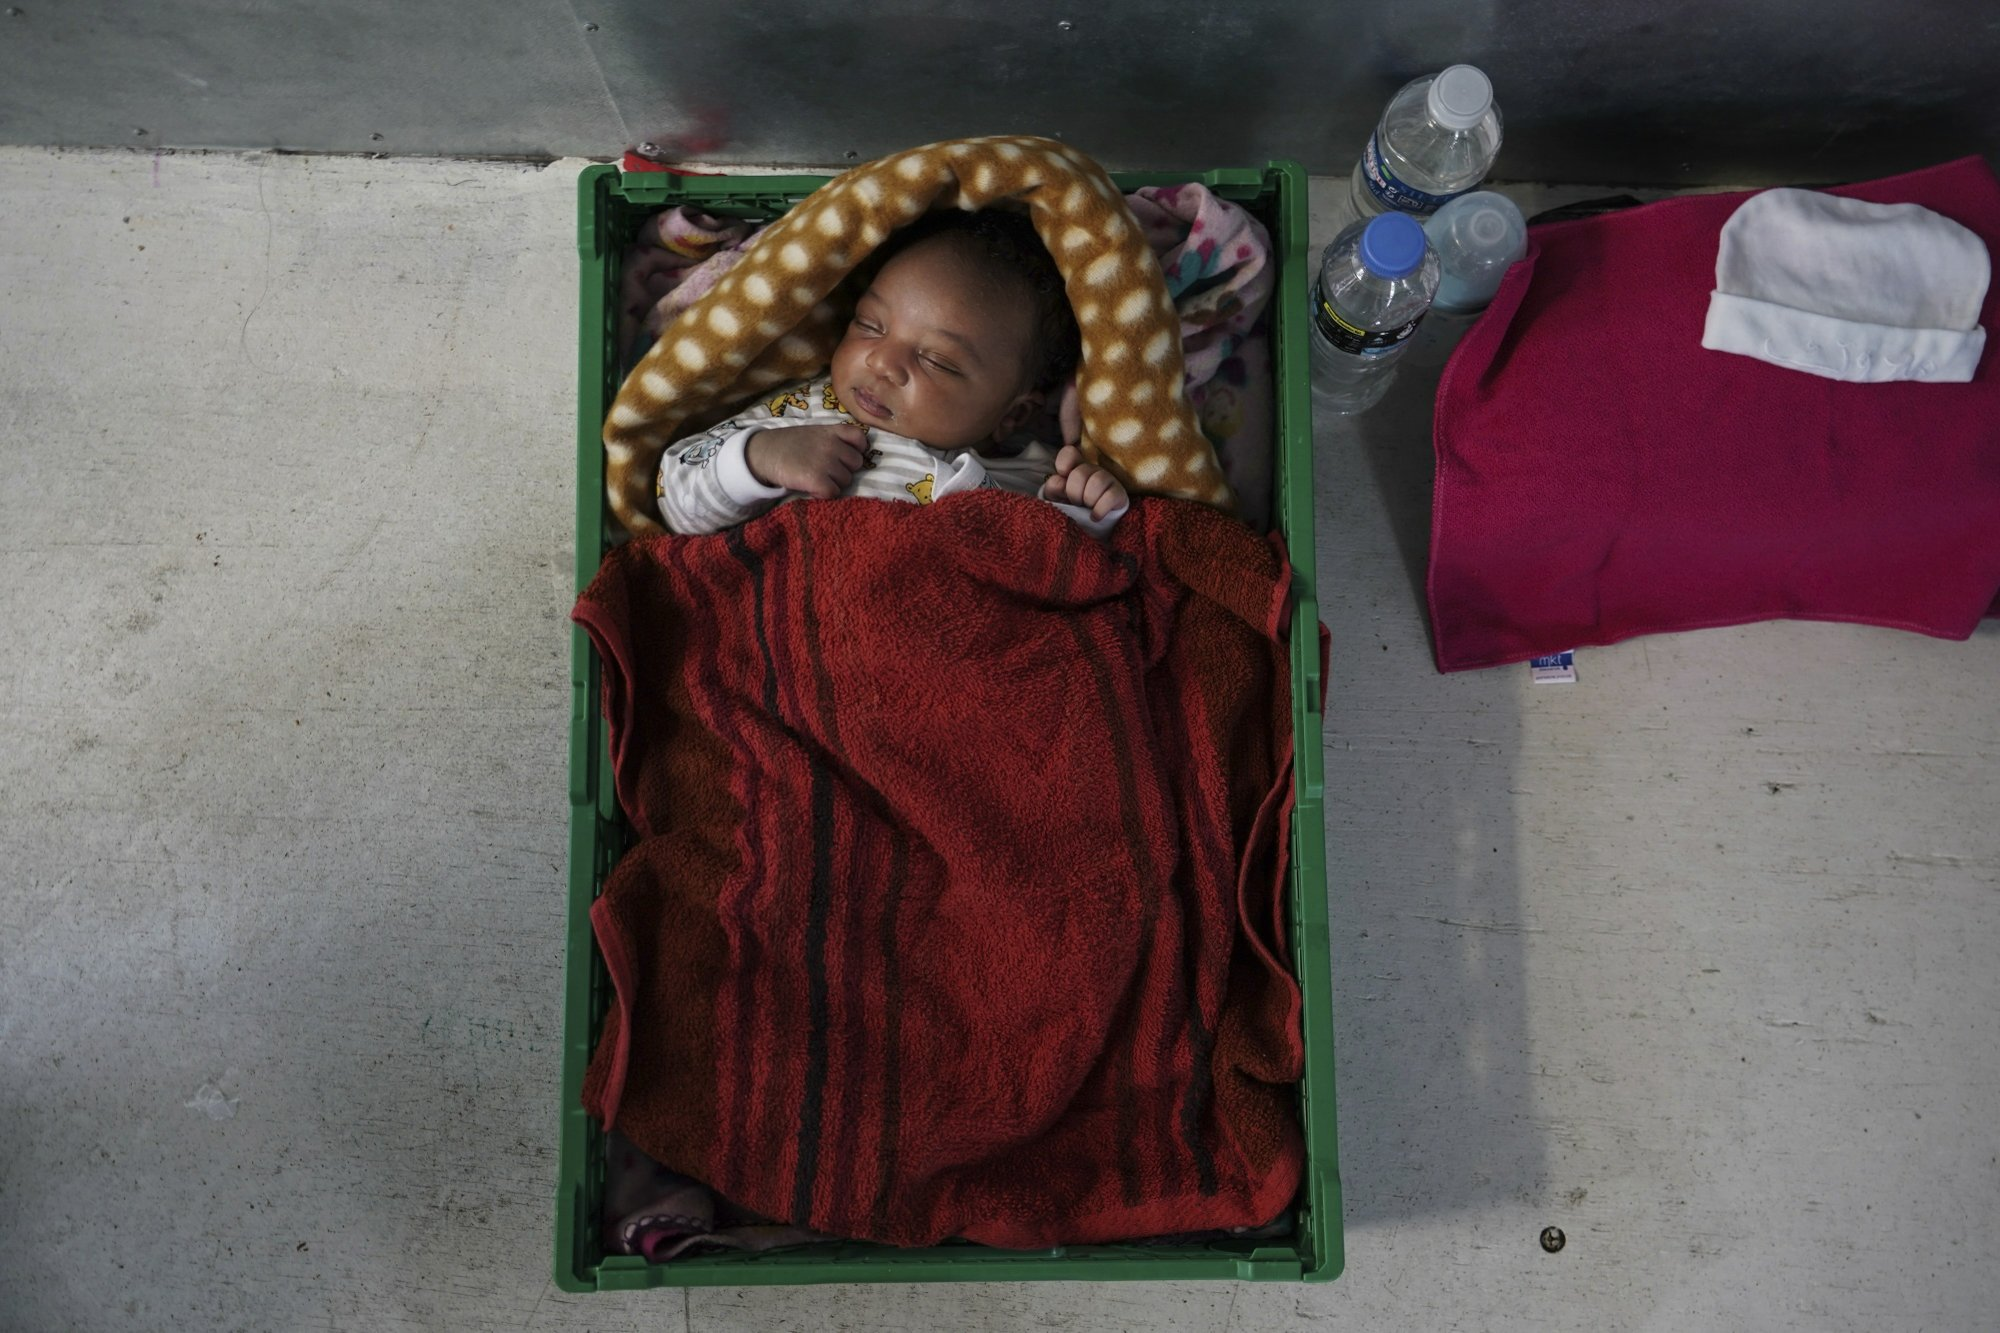 In this Sept. 18, 2019 photo, newborn baby Ange sleeps in a makeshift crib aboard the Ocean Viking humanitarian ship as it sails in the Mediterranean Sea. His mother, Prudence Aimee, gave birth to her third son Sept. 13, just three days before boarding an overcrowded wooden boat in the hope of getting her children out of war-torn Libya. Her husband was not able to join them and stayed behind. (AP Photo/Renata Brito)